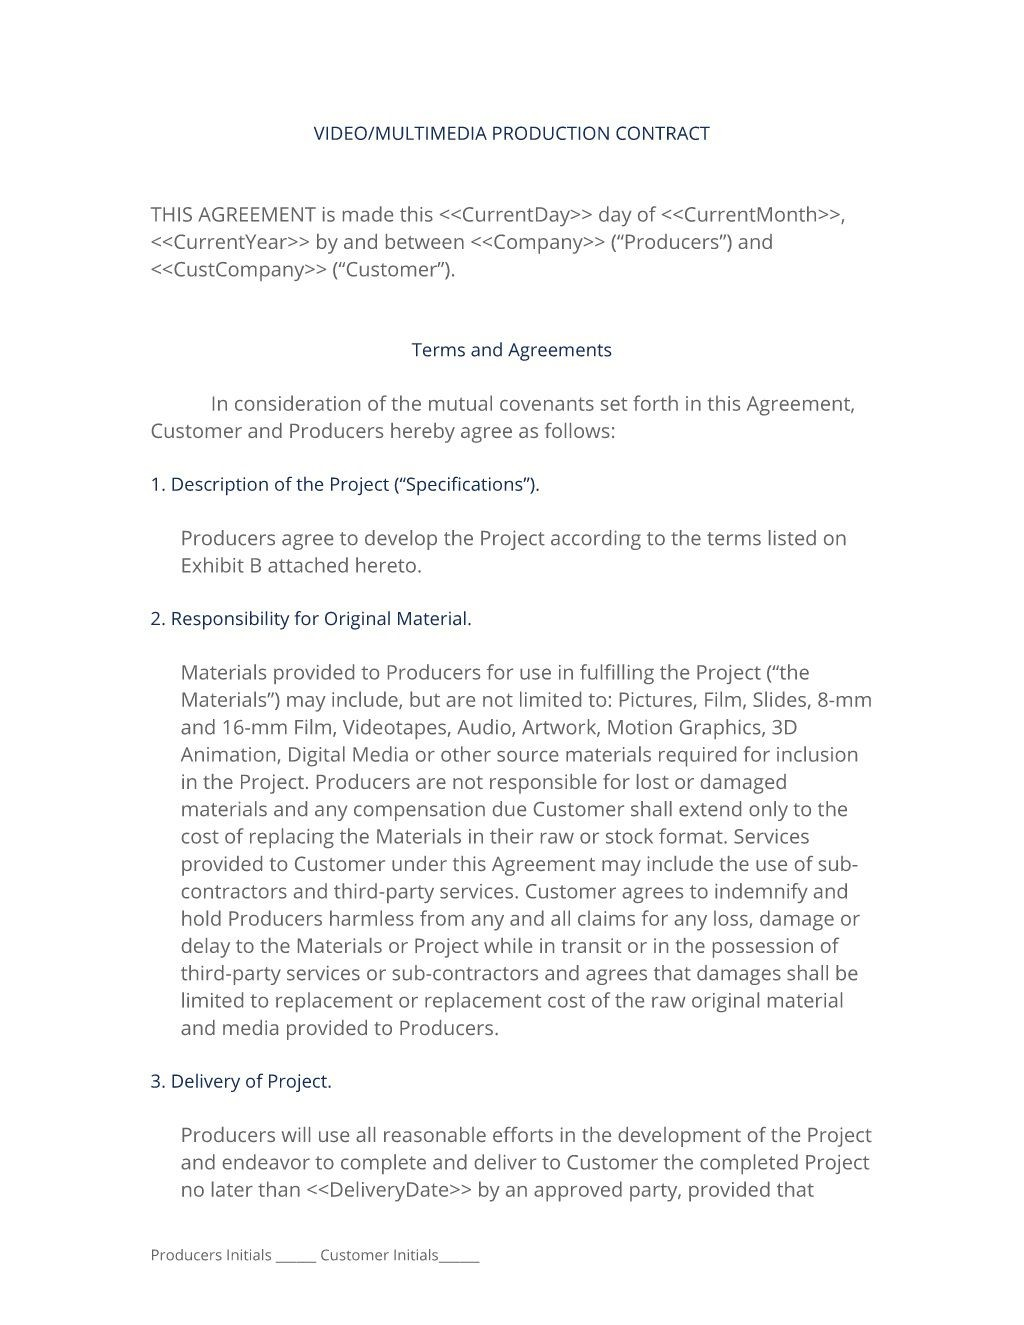 002 Shocking Wedding Videographer Contract Template High Definition  Videography PdfLarge